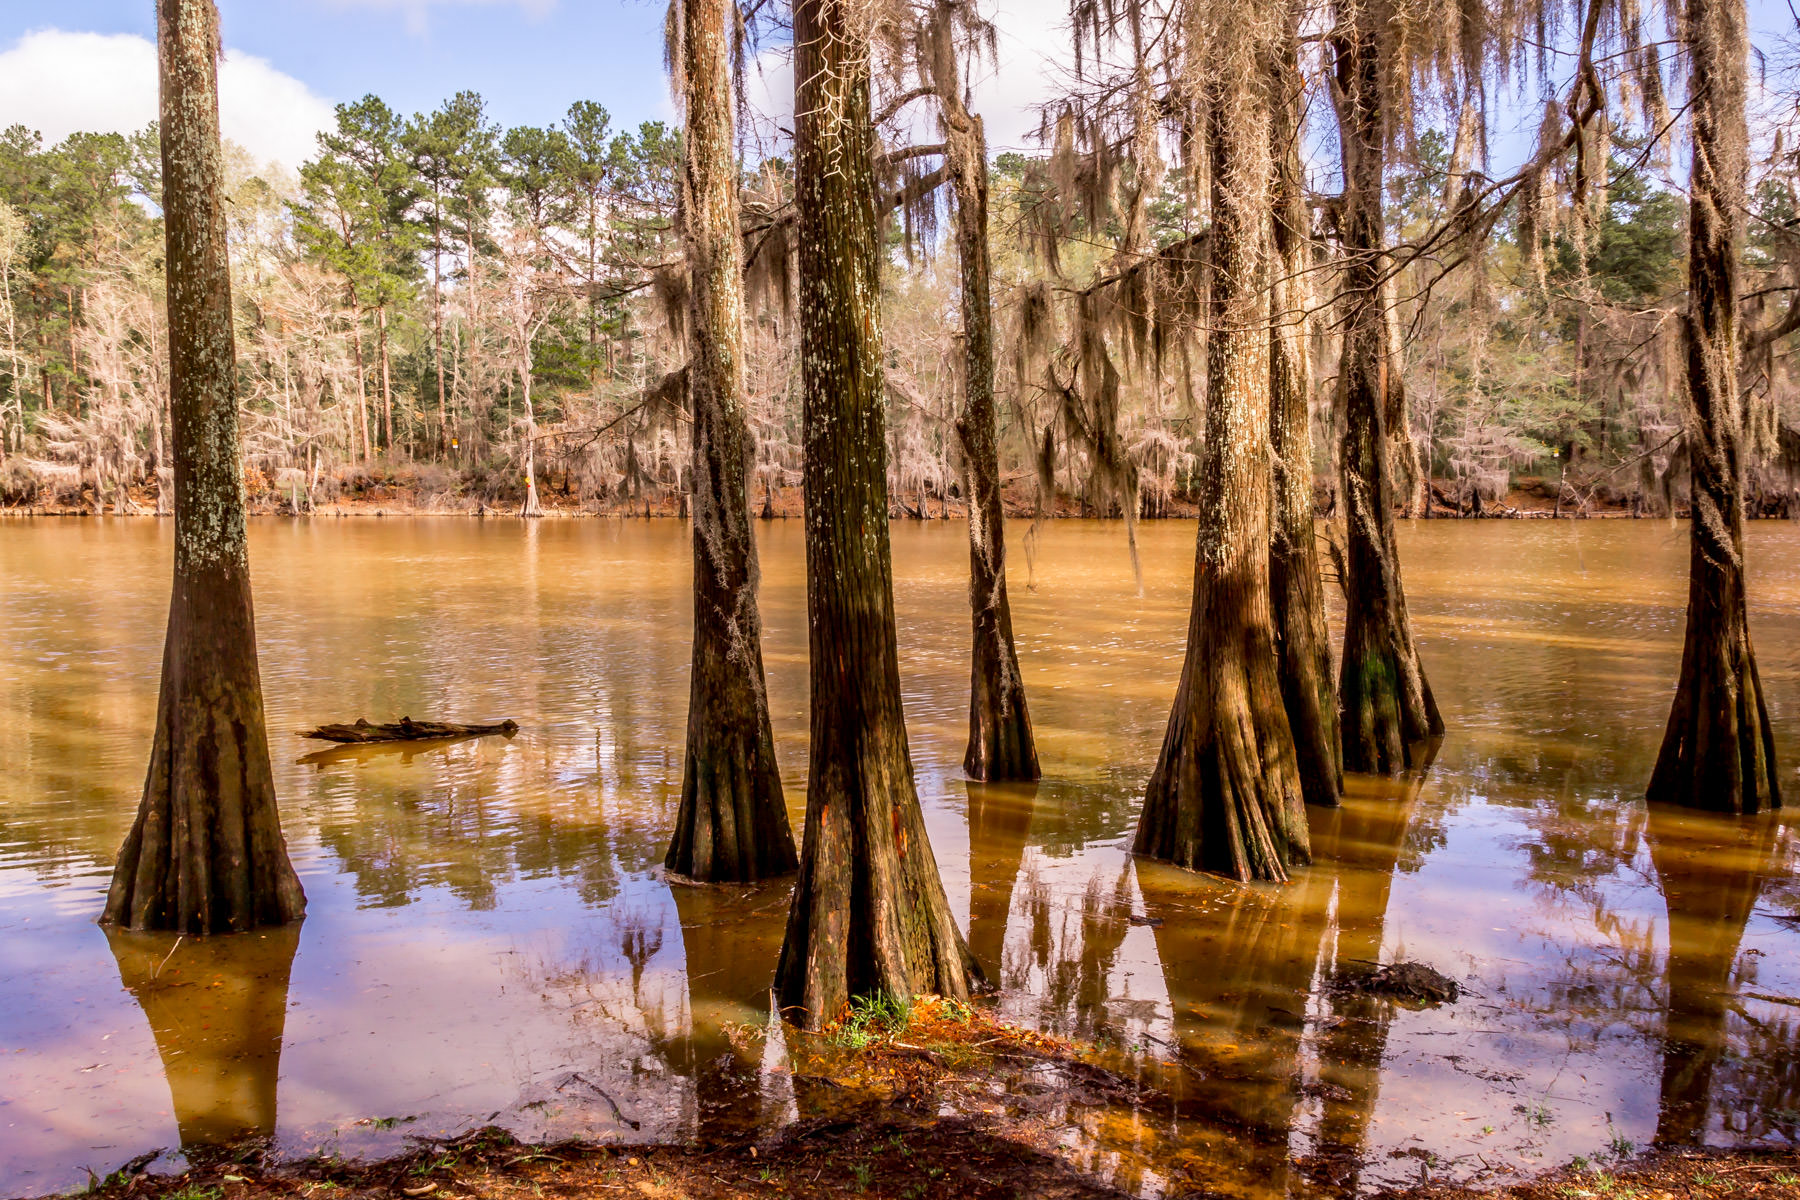 Cypress trees rise out of the water at Caddo Lake State Park, Texas.